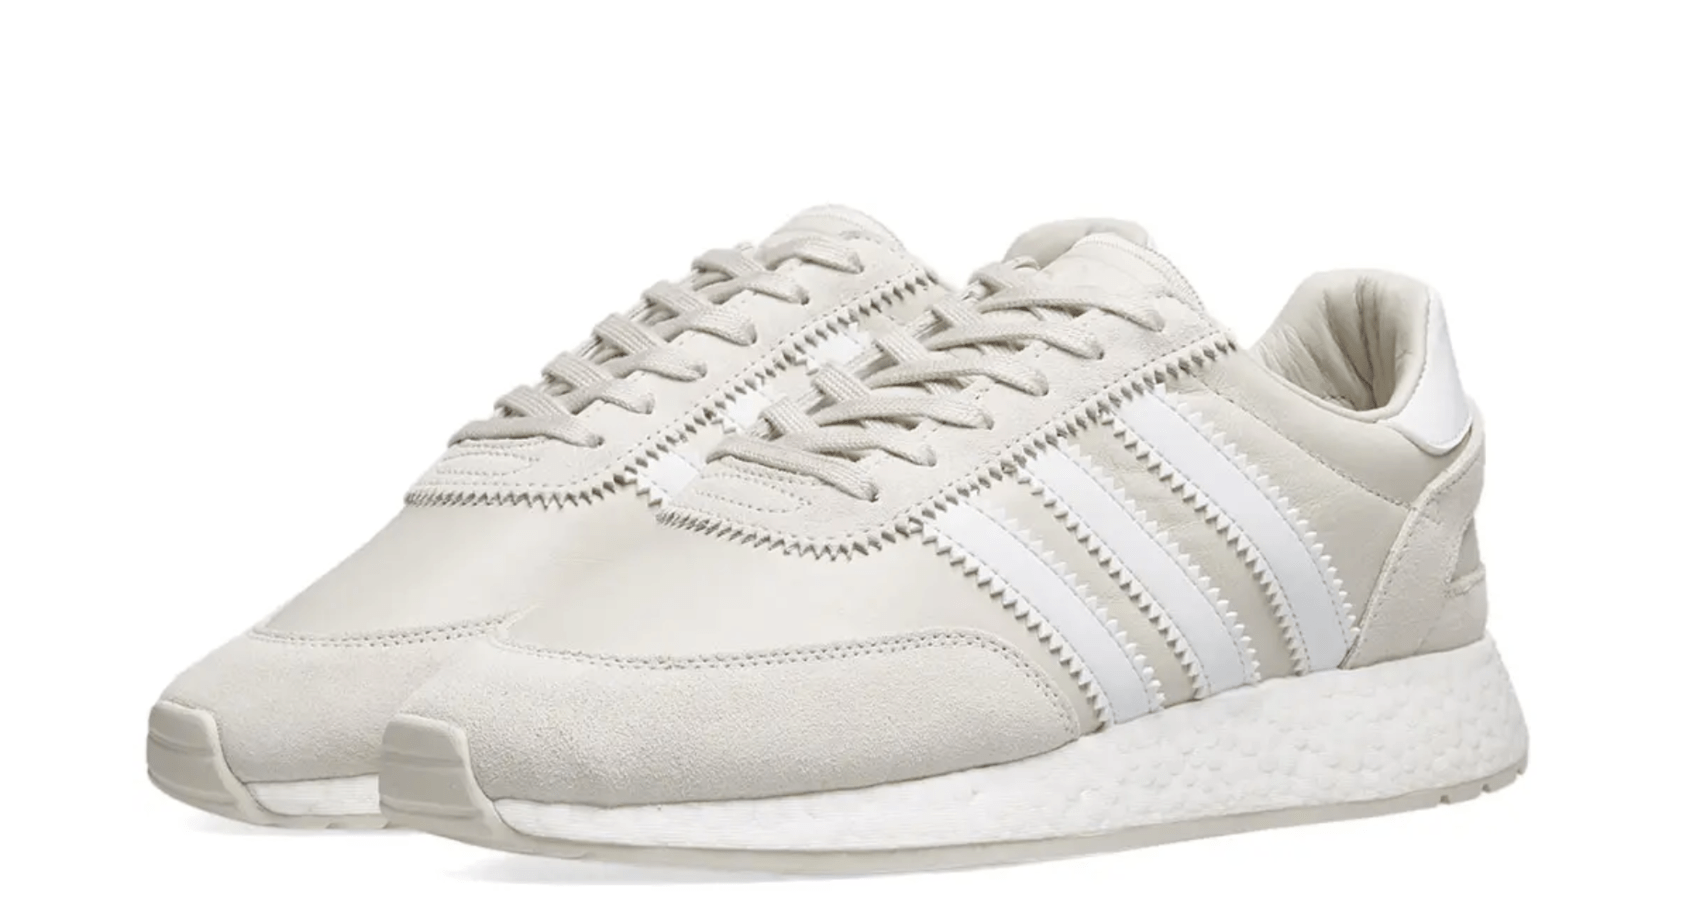 3105293aaab0 The adidas I-5923 has seen dozens of colorways since its debut two years  ago. Now